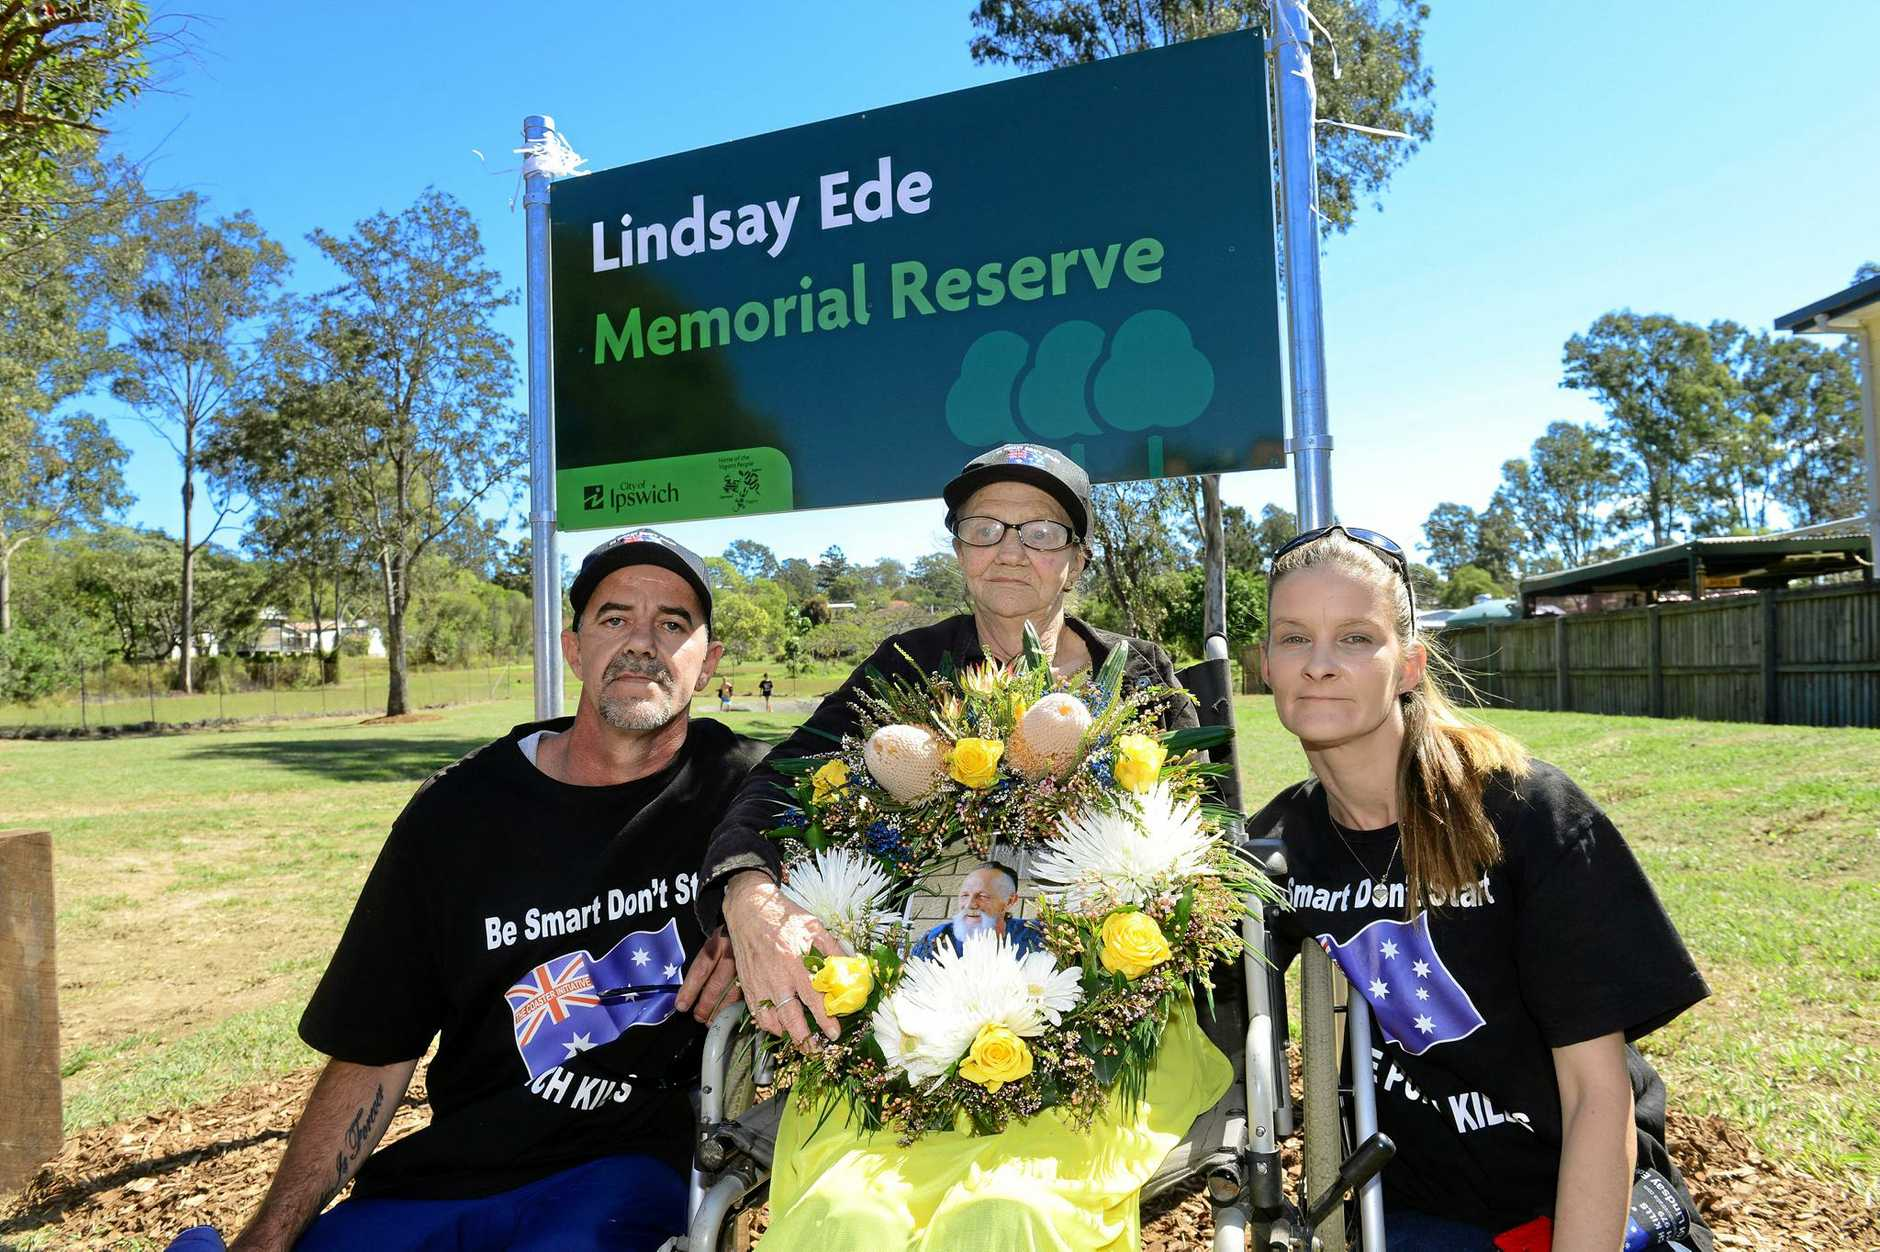 NOT OVER: Terry Bishop, pictured with his mother Lynnette Appleton-Rodgers and wife Linda, says the family will keep campaigning for the One Punch Kills cause. (INSET) Lindsay Ede.